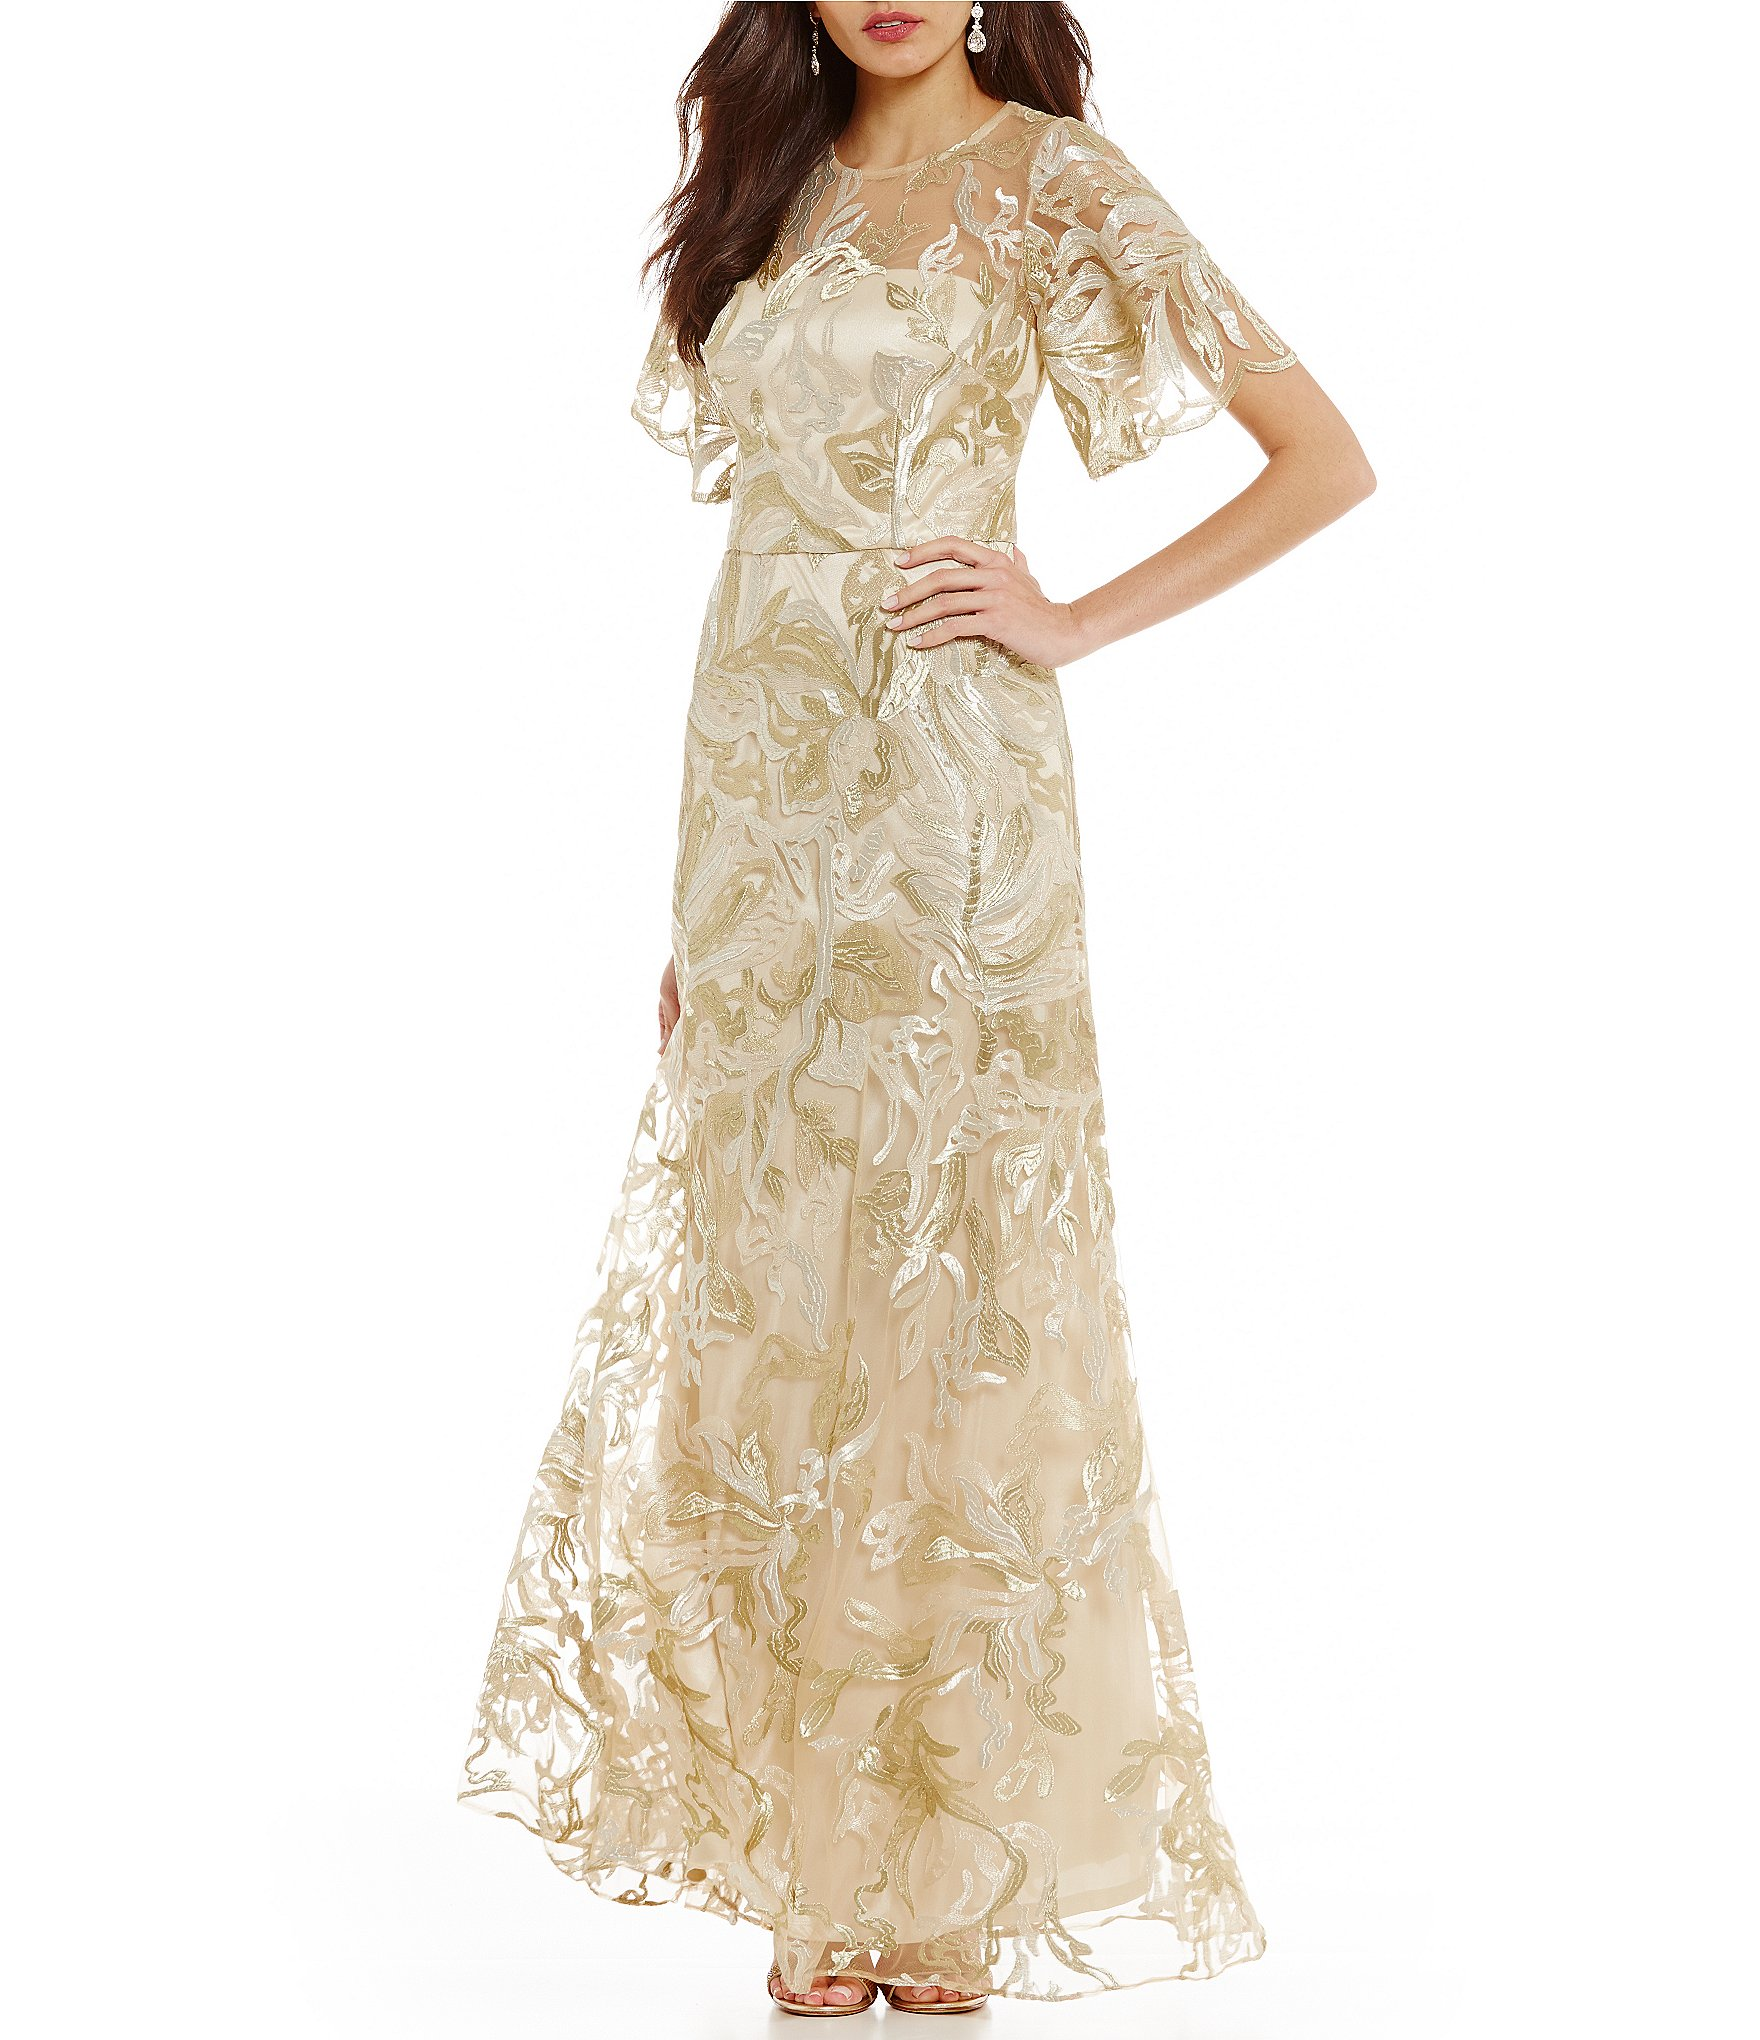 Evening gowns, work wear, party dresses, and pieces for your bridal party are just a few of the items you'll score from our dresses on clearance. Shopping our discount dresses is the best way to land great designer bargains on outfits for every occasion.